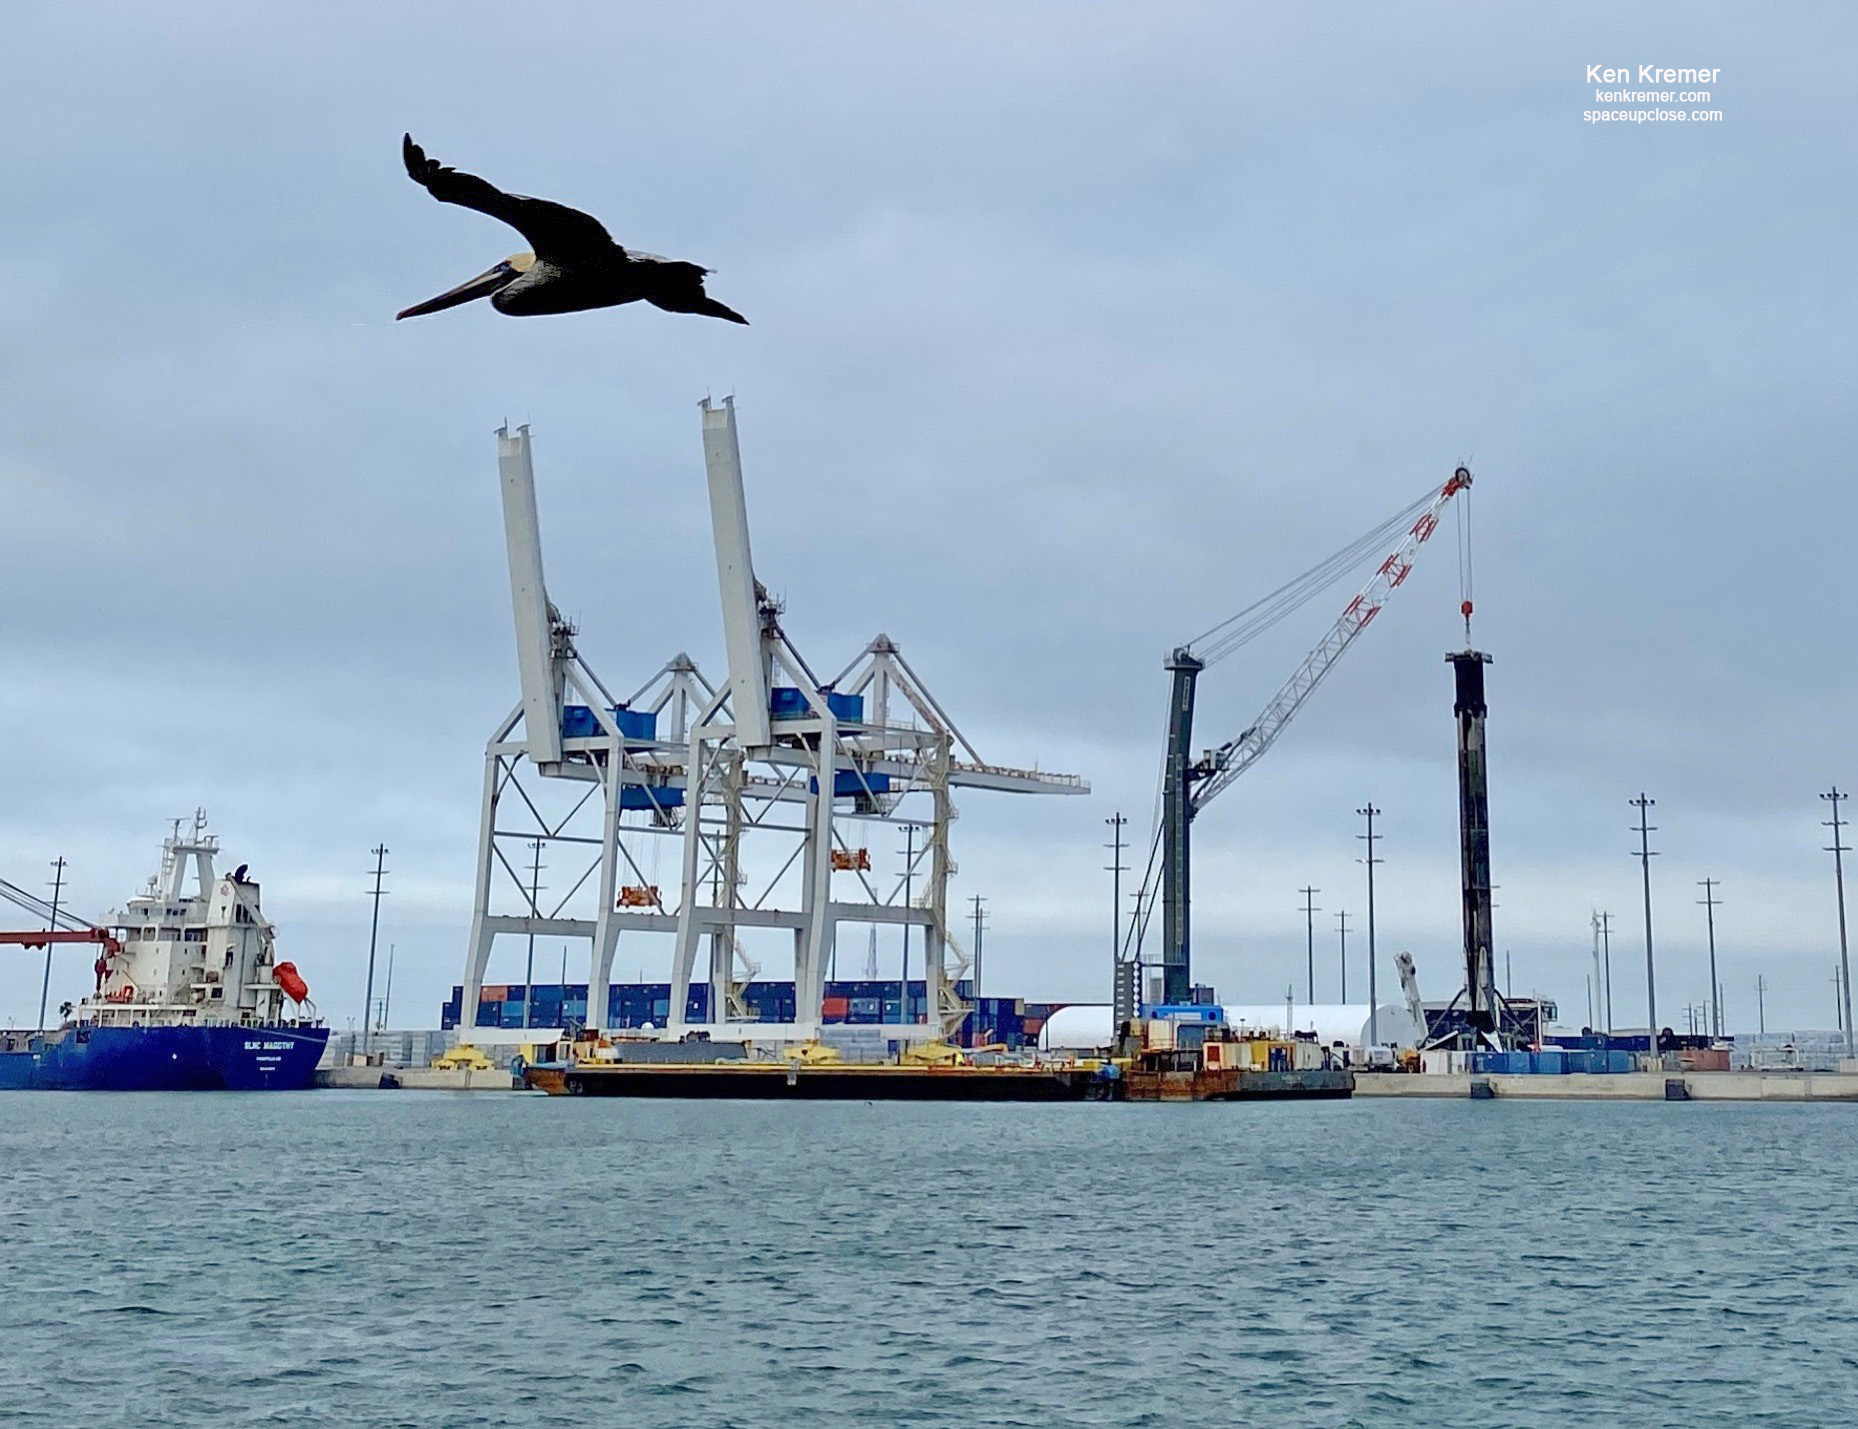 5x Flown and Landed SpaceX Falcon 9 Booster Returns to Port Canaveral Amidst Threatening Weather: Photos